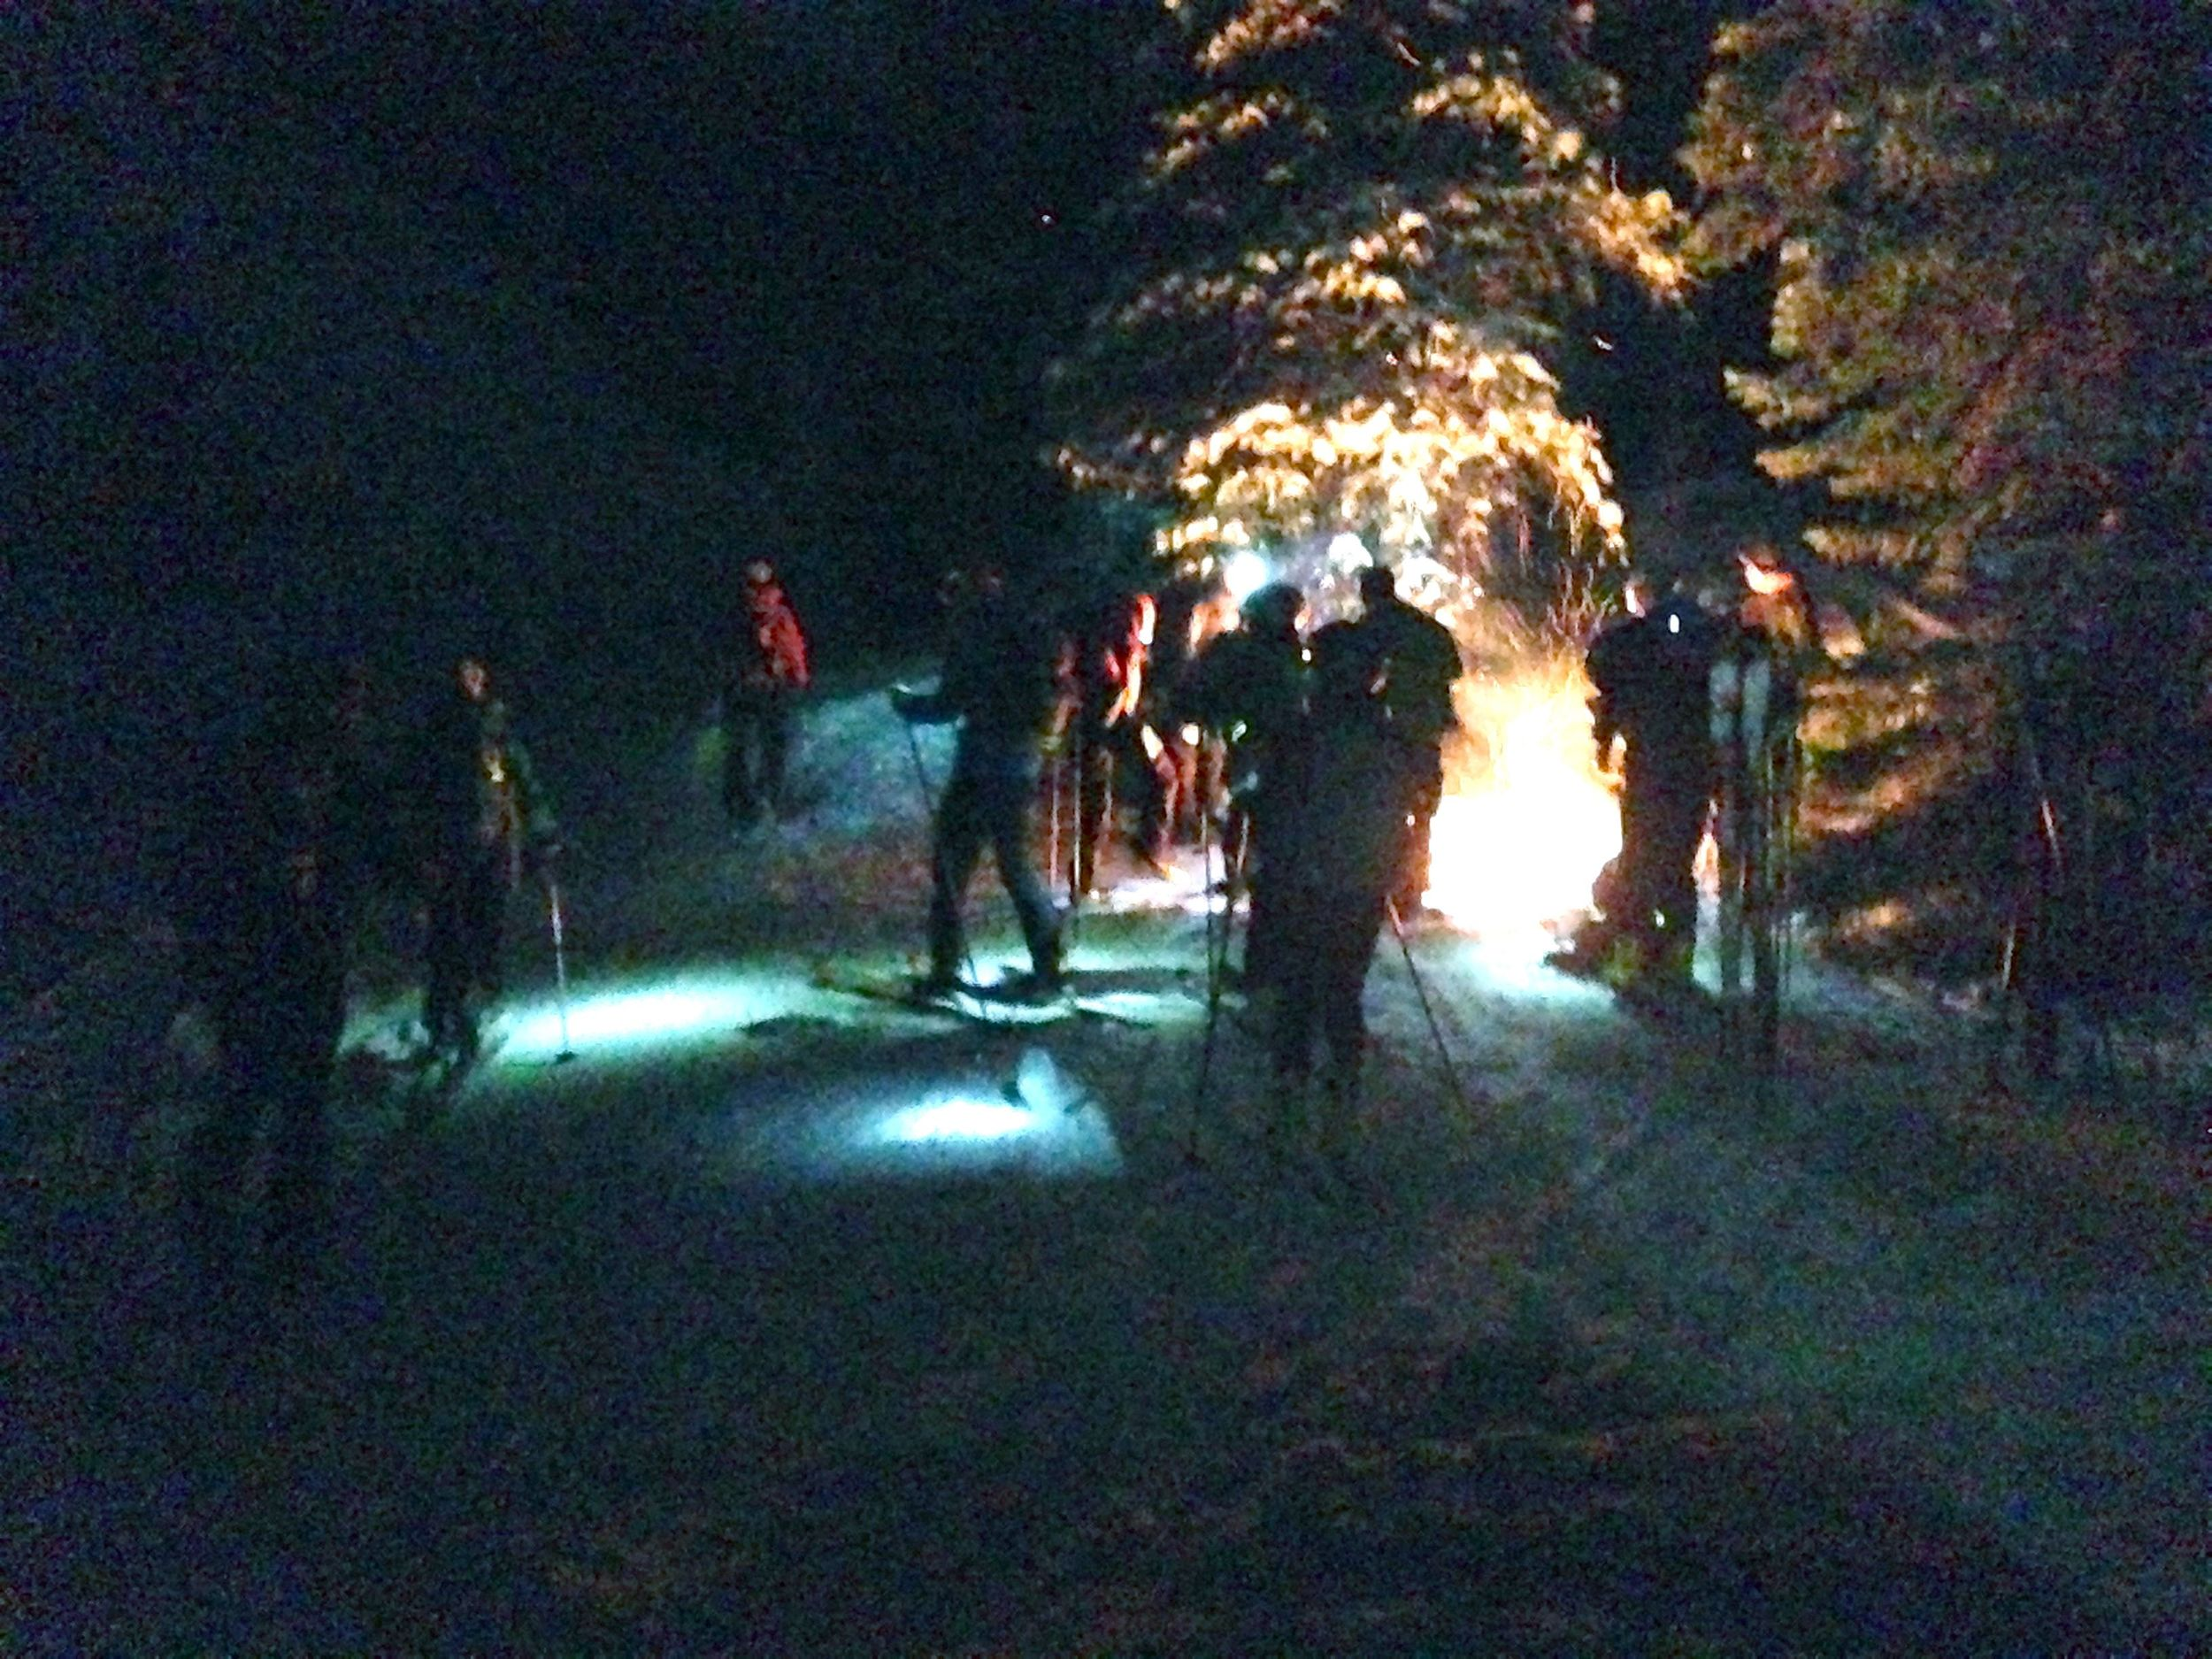 racers regrouping at a bonfire checkpoint.